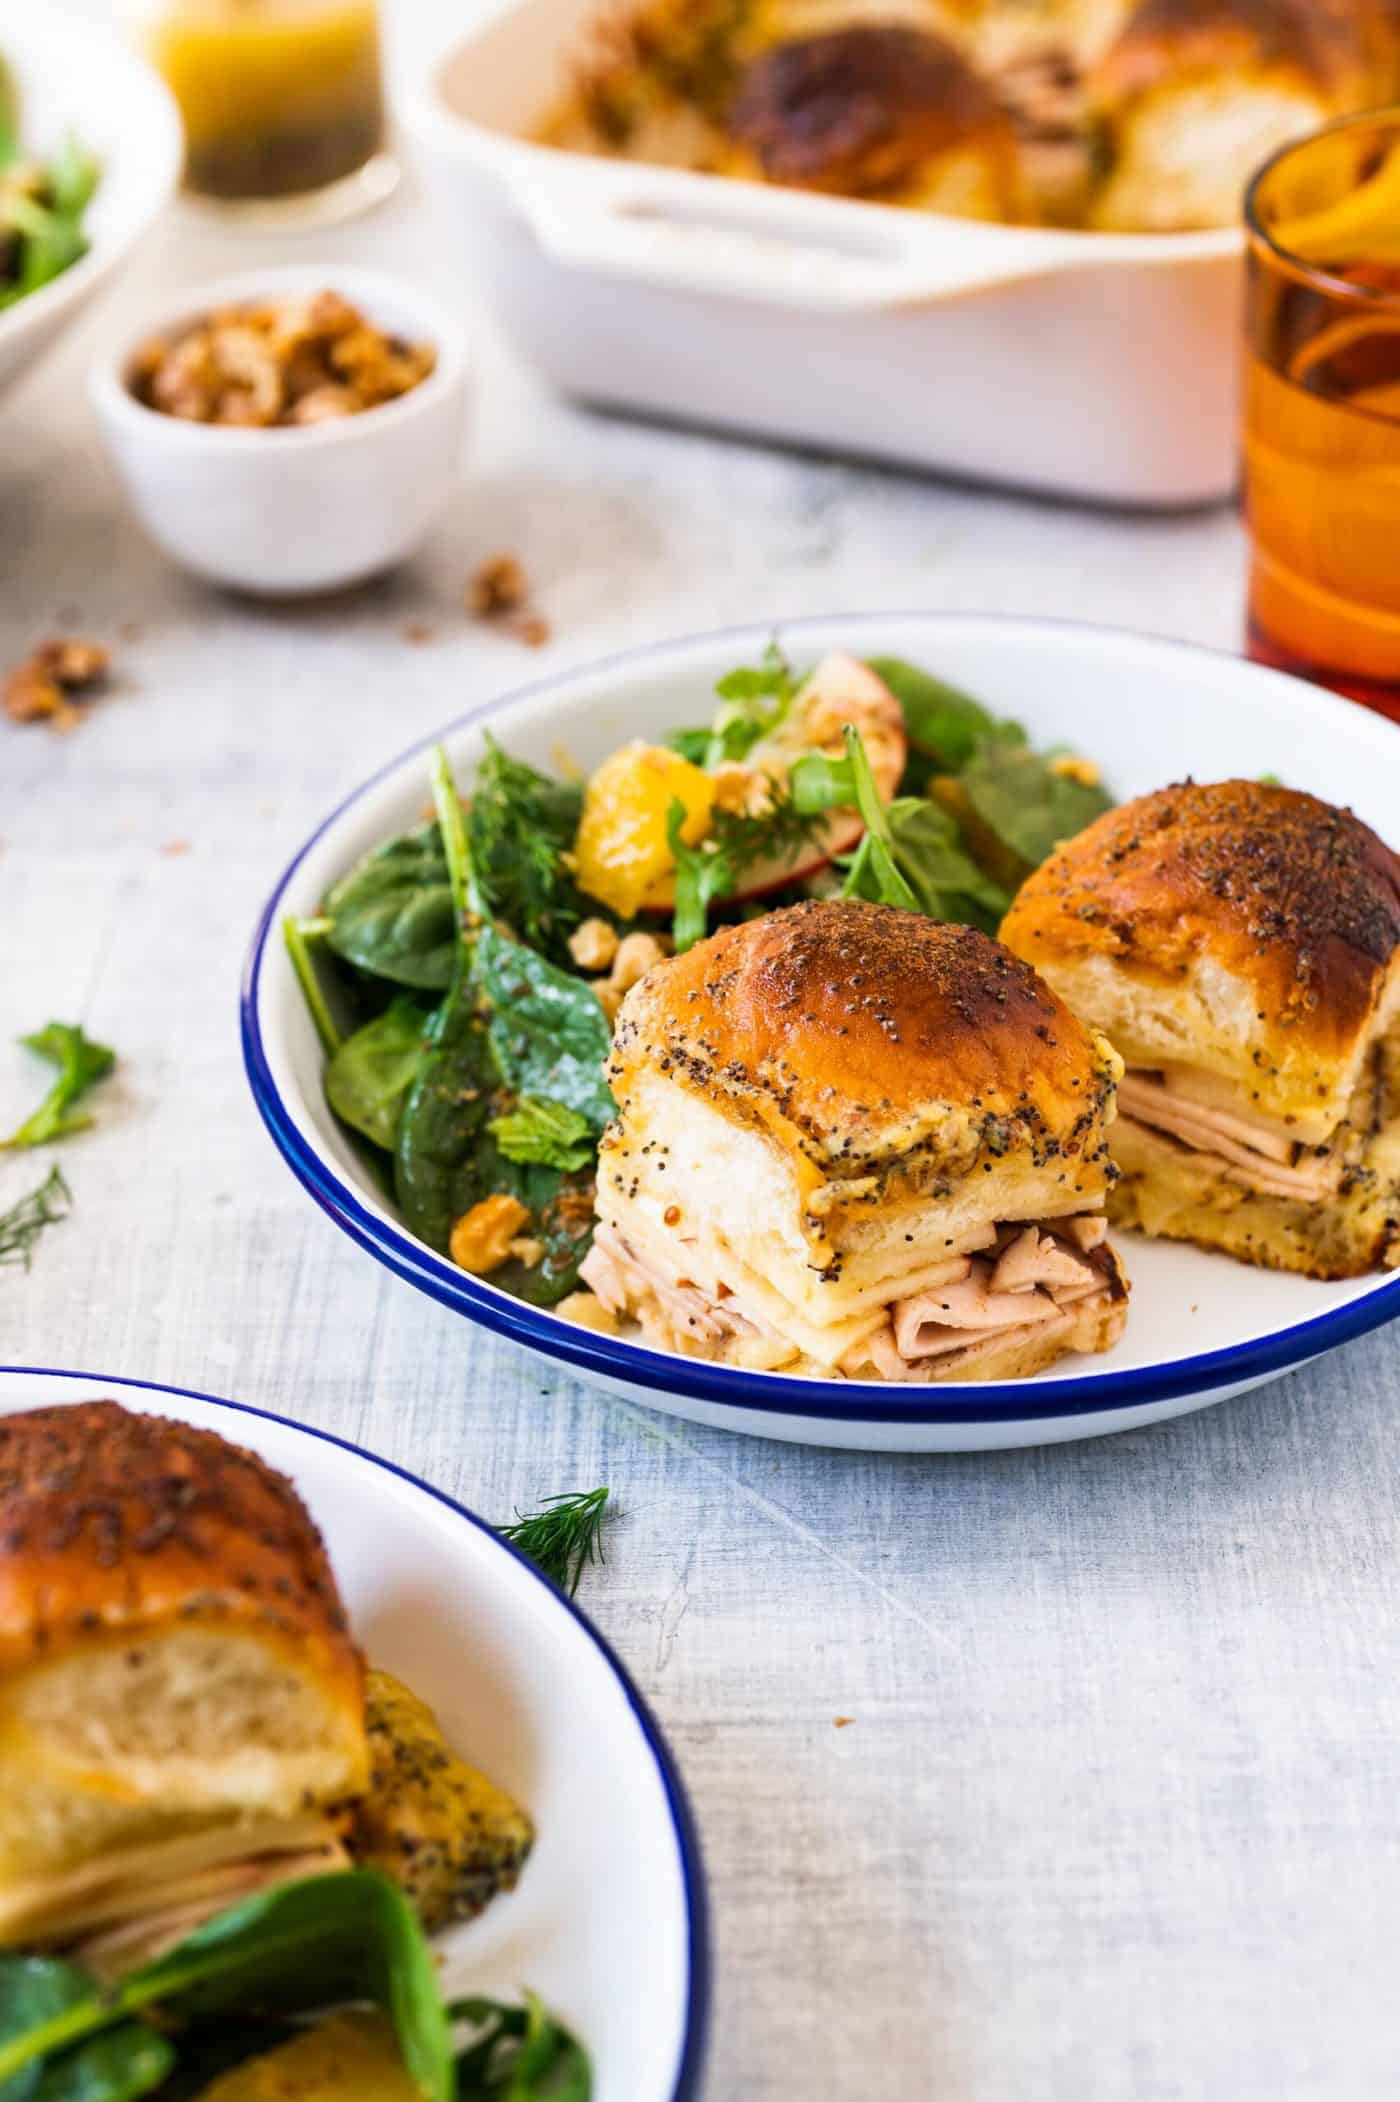 Pig and Quill Baked Smoked Turkey Sliders + Spring Herb Salad Recipe